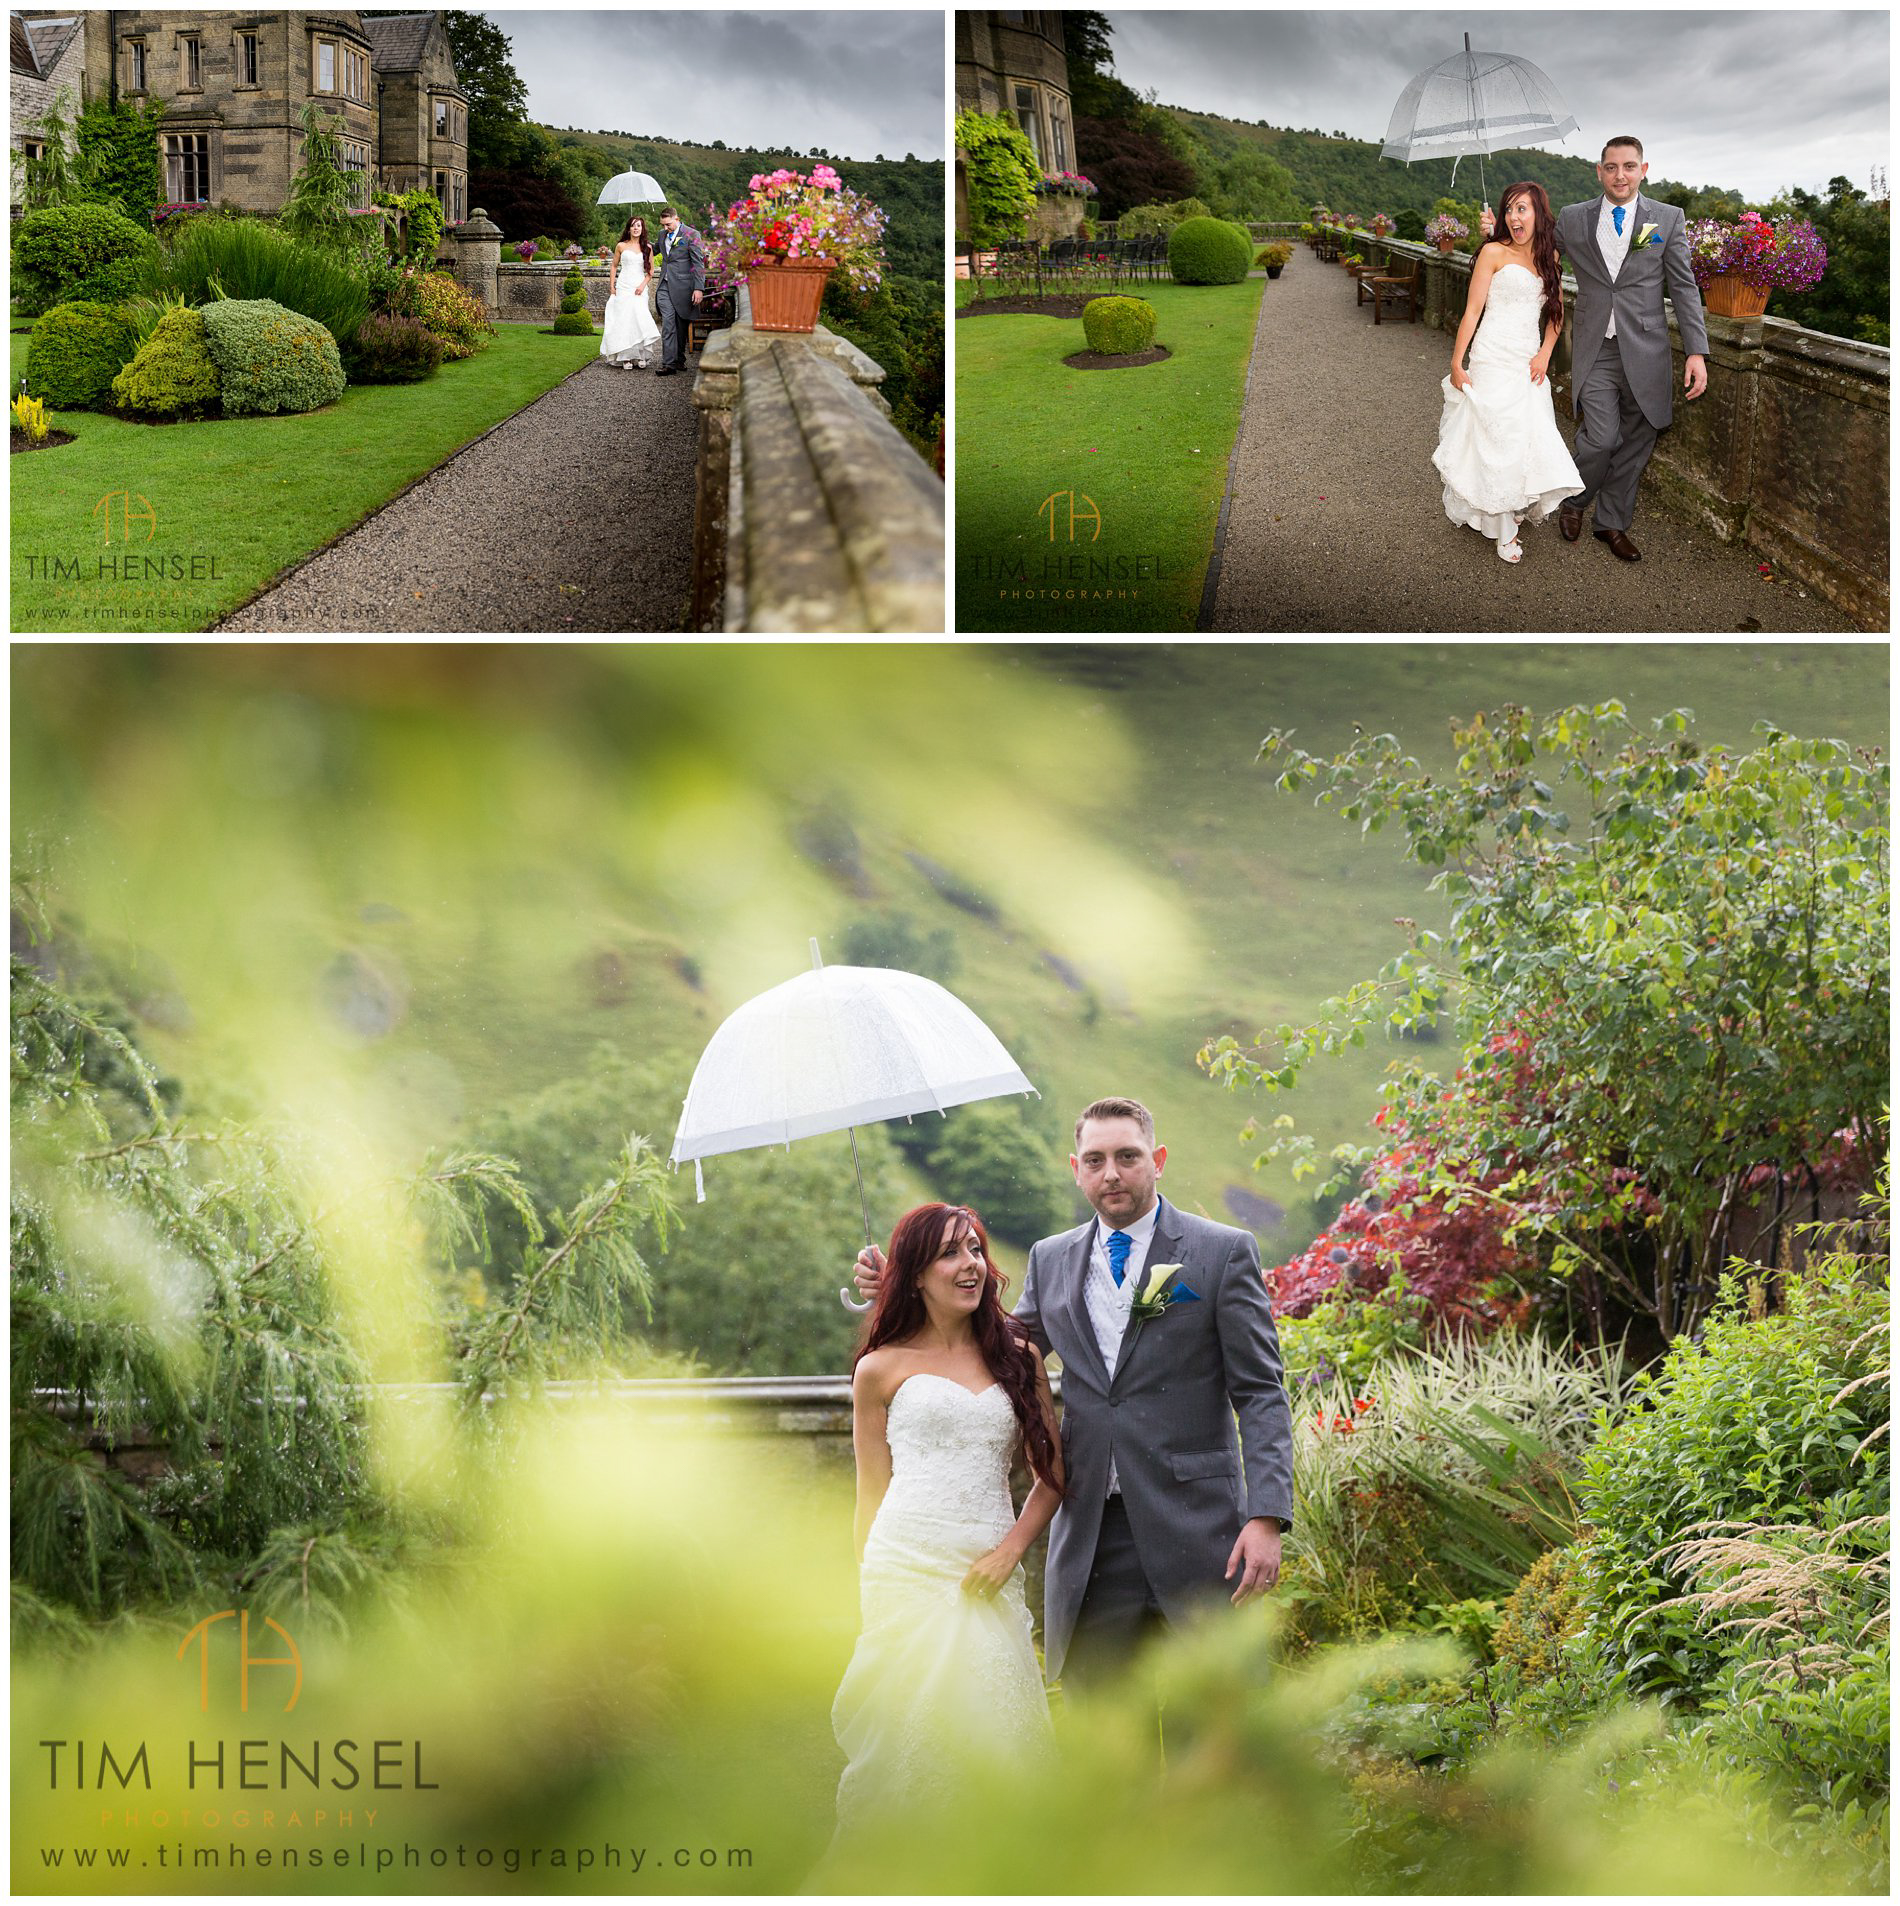 Natural wedding photography at Cressbrook Hall in Derbyshire